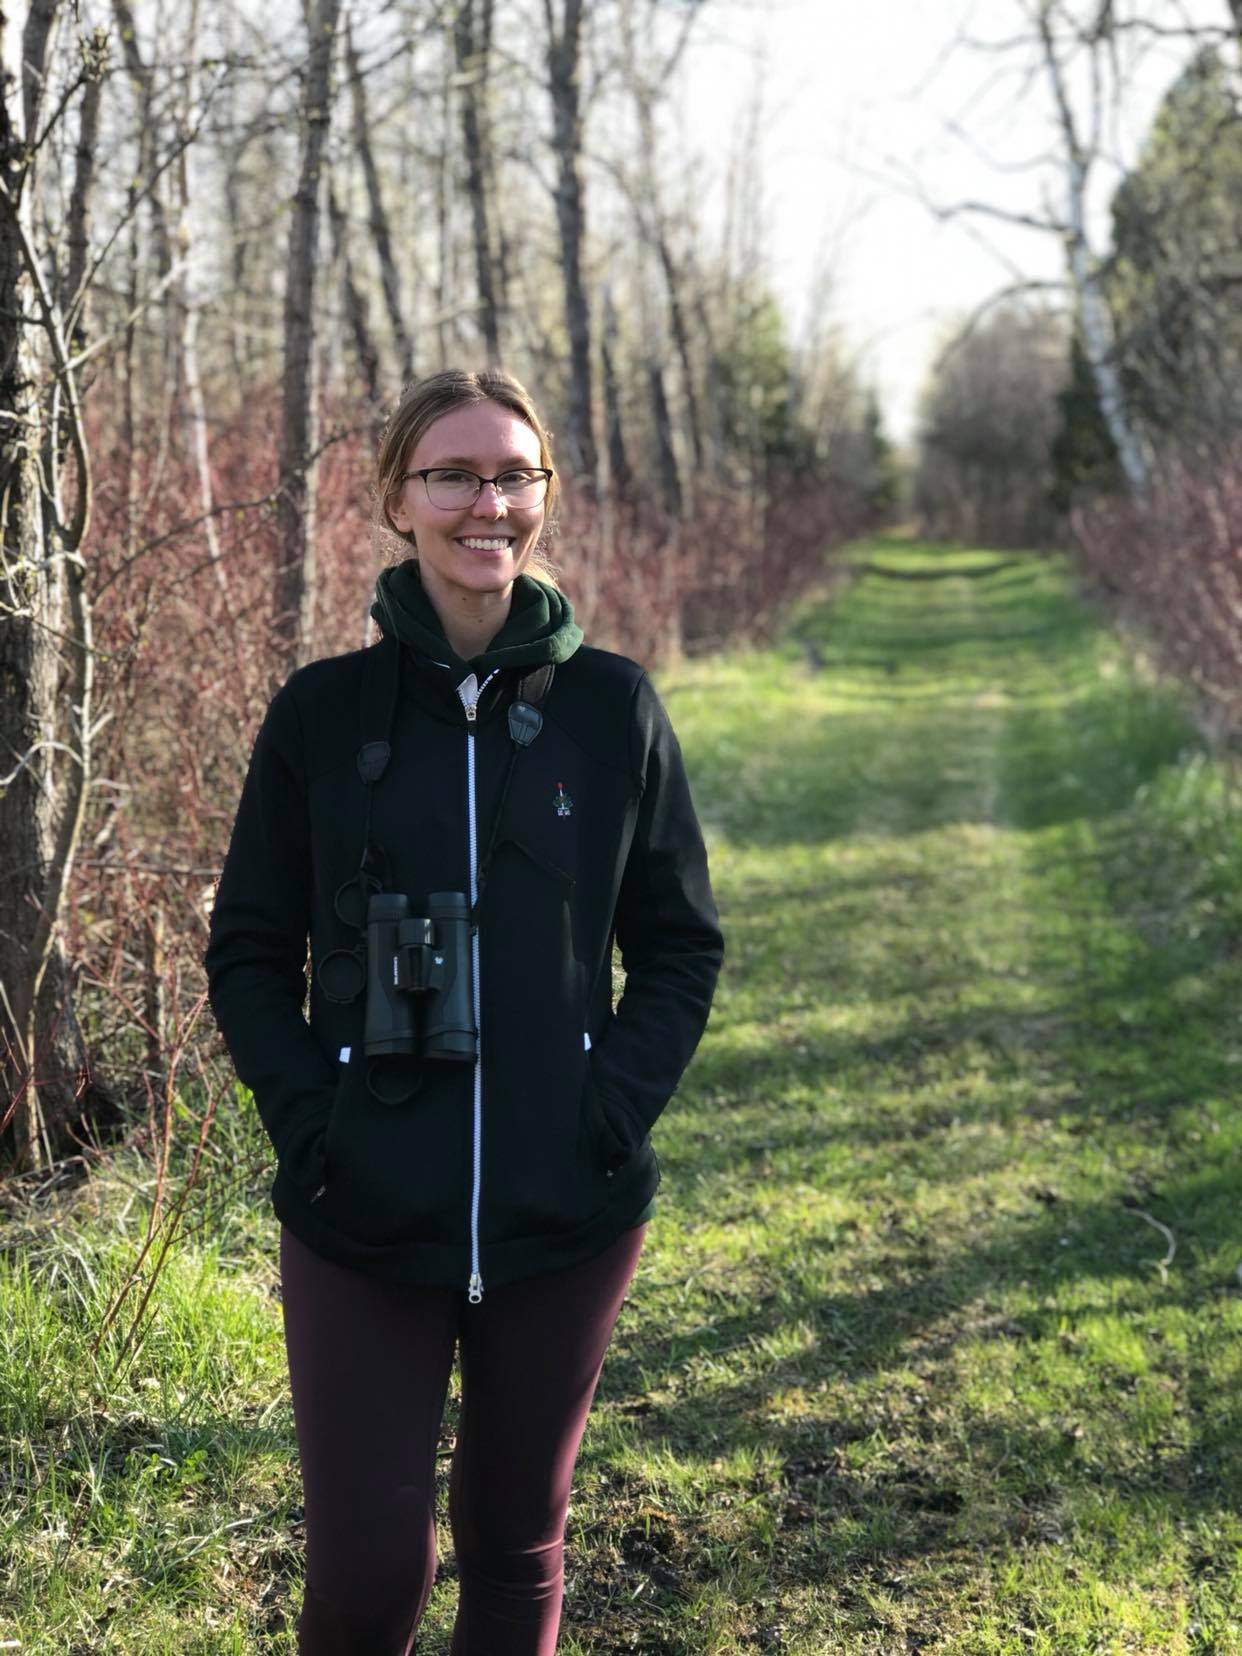 Gabby Nichols wearing binoculars and smiling in front of grassy path lined by tree silhouettes.